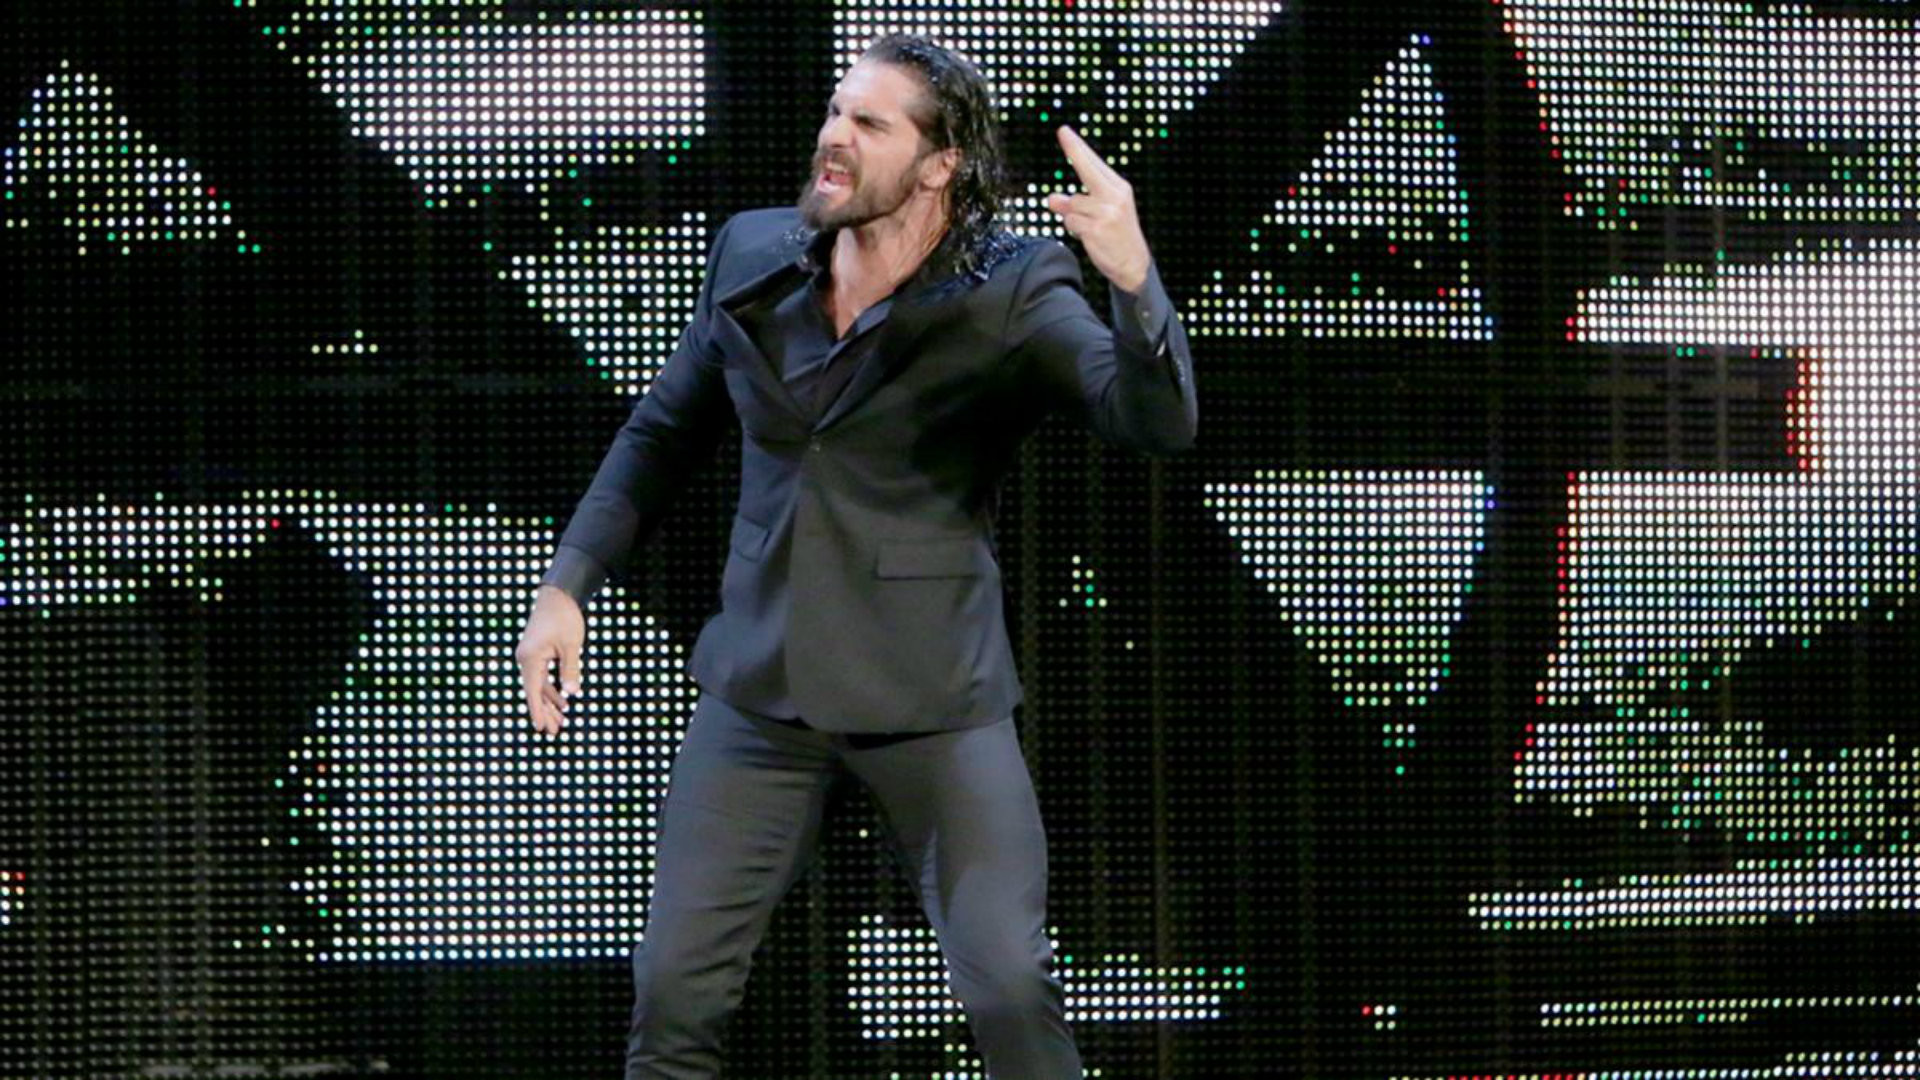 Great Wallpaper Logo Seth Rollins - 1119442-beautiful-seth-rollins-wallpapers-1920x1080-picture  Snapshot_621583.jpg